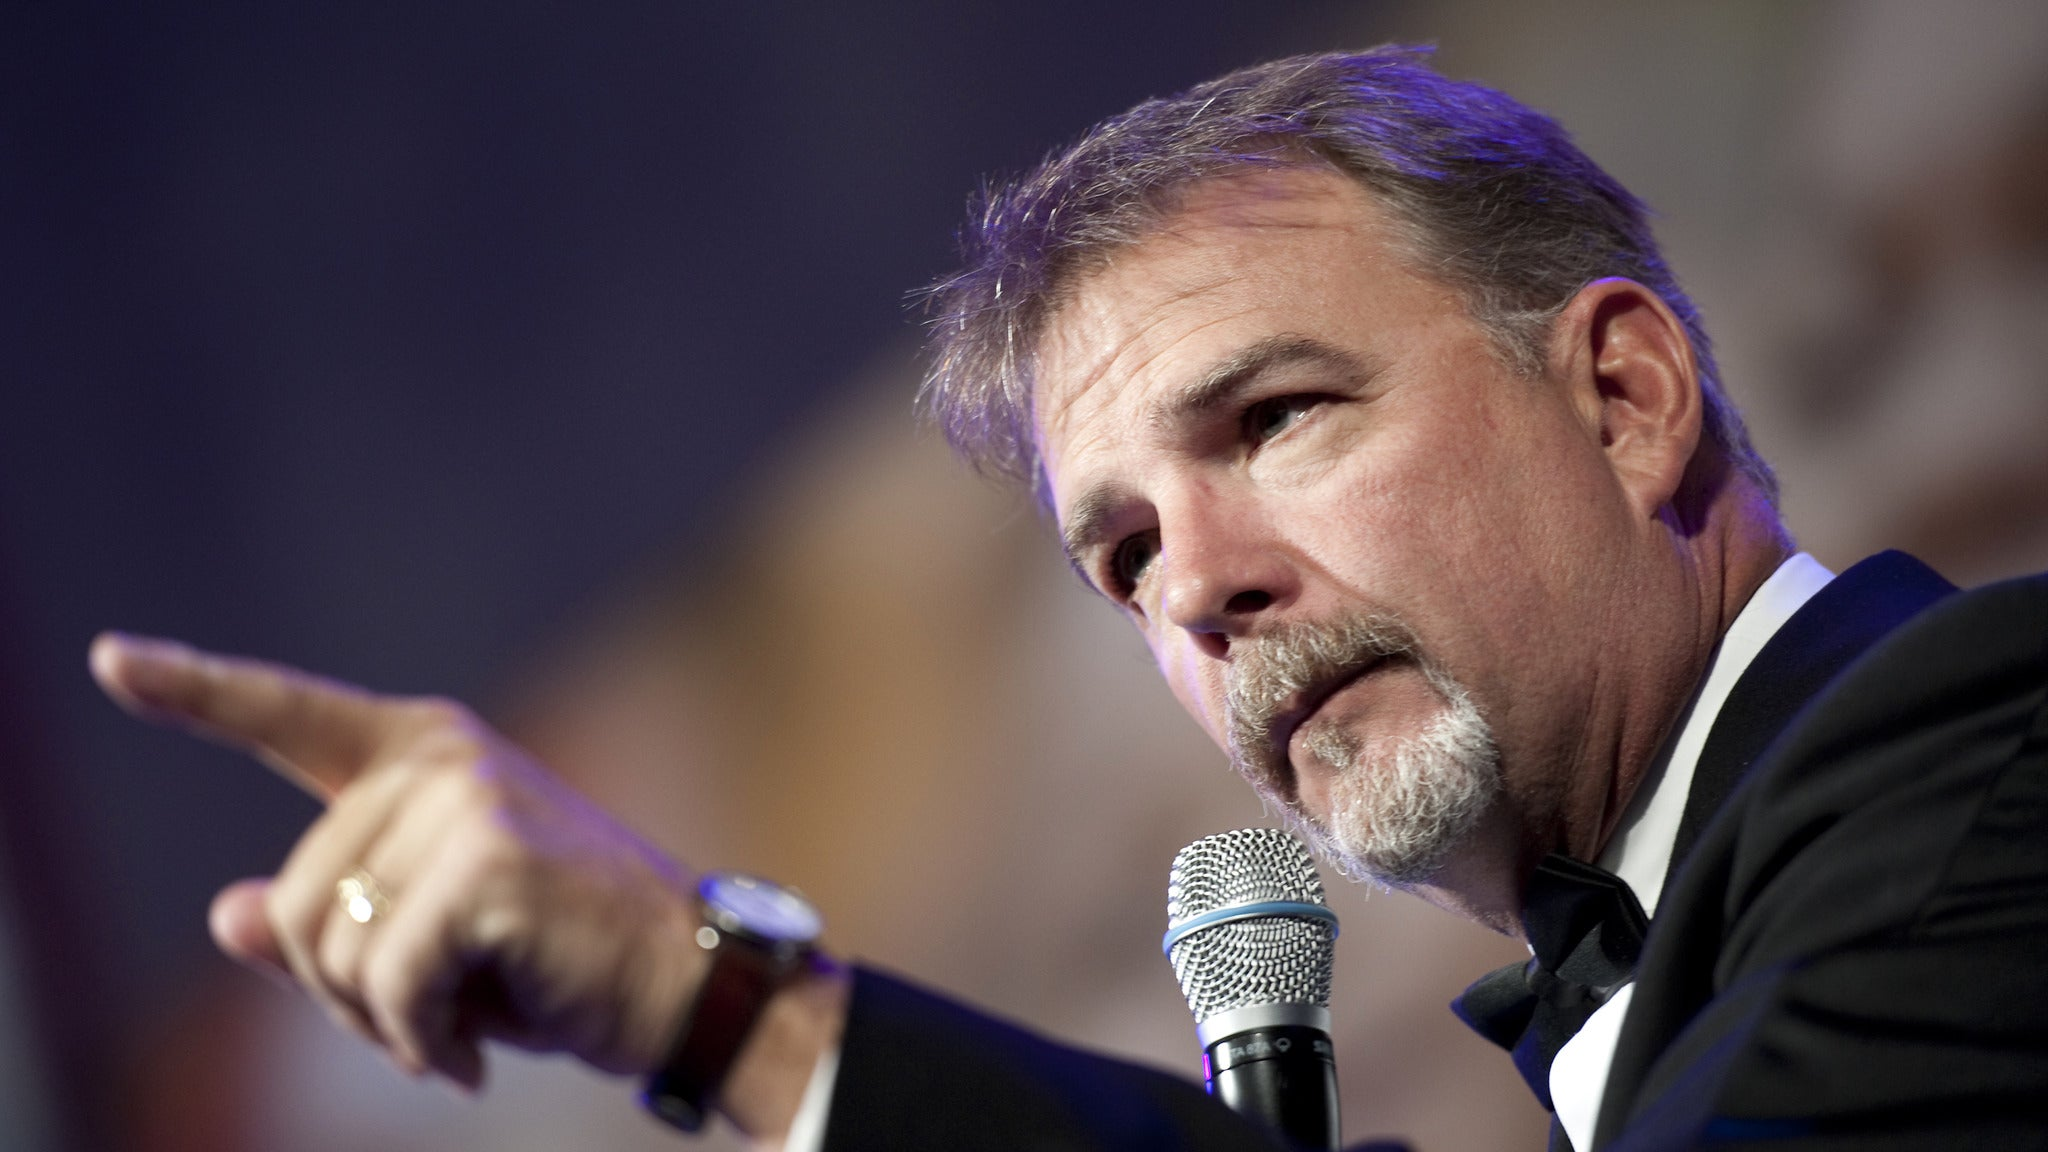 Civic Arts Plaza presents BILL ENGVALL